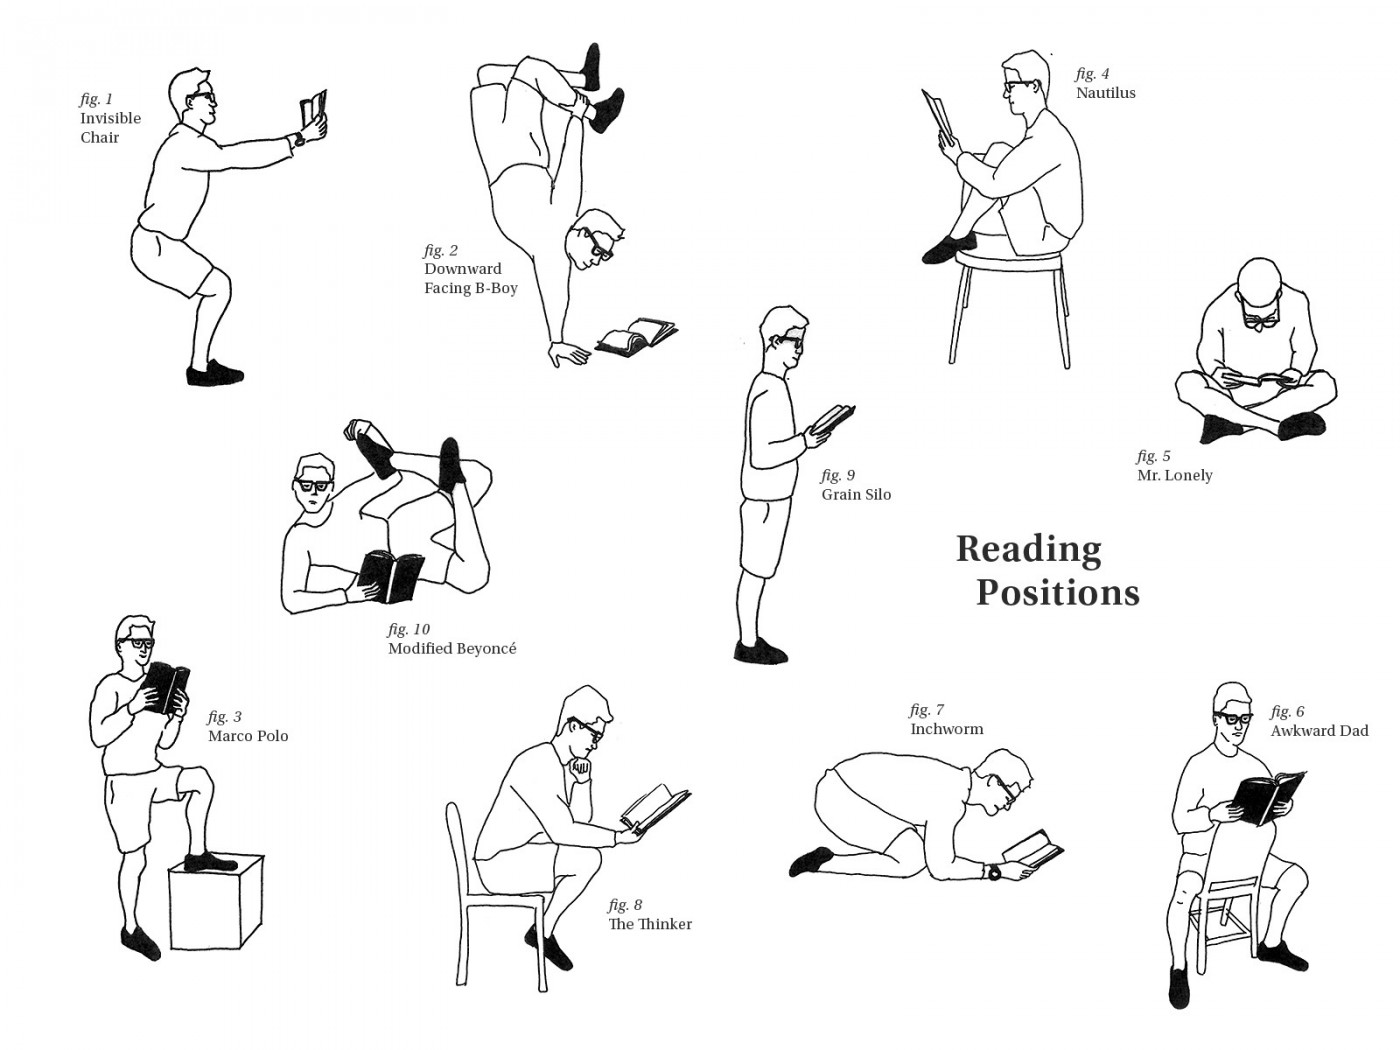 A Fun Chart Of Unusual Reading Positions For Bookworms